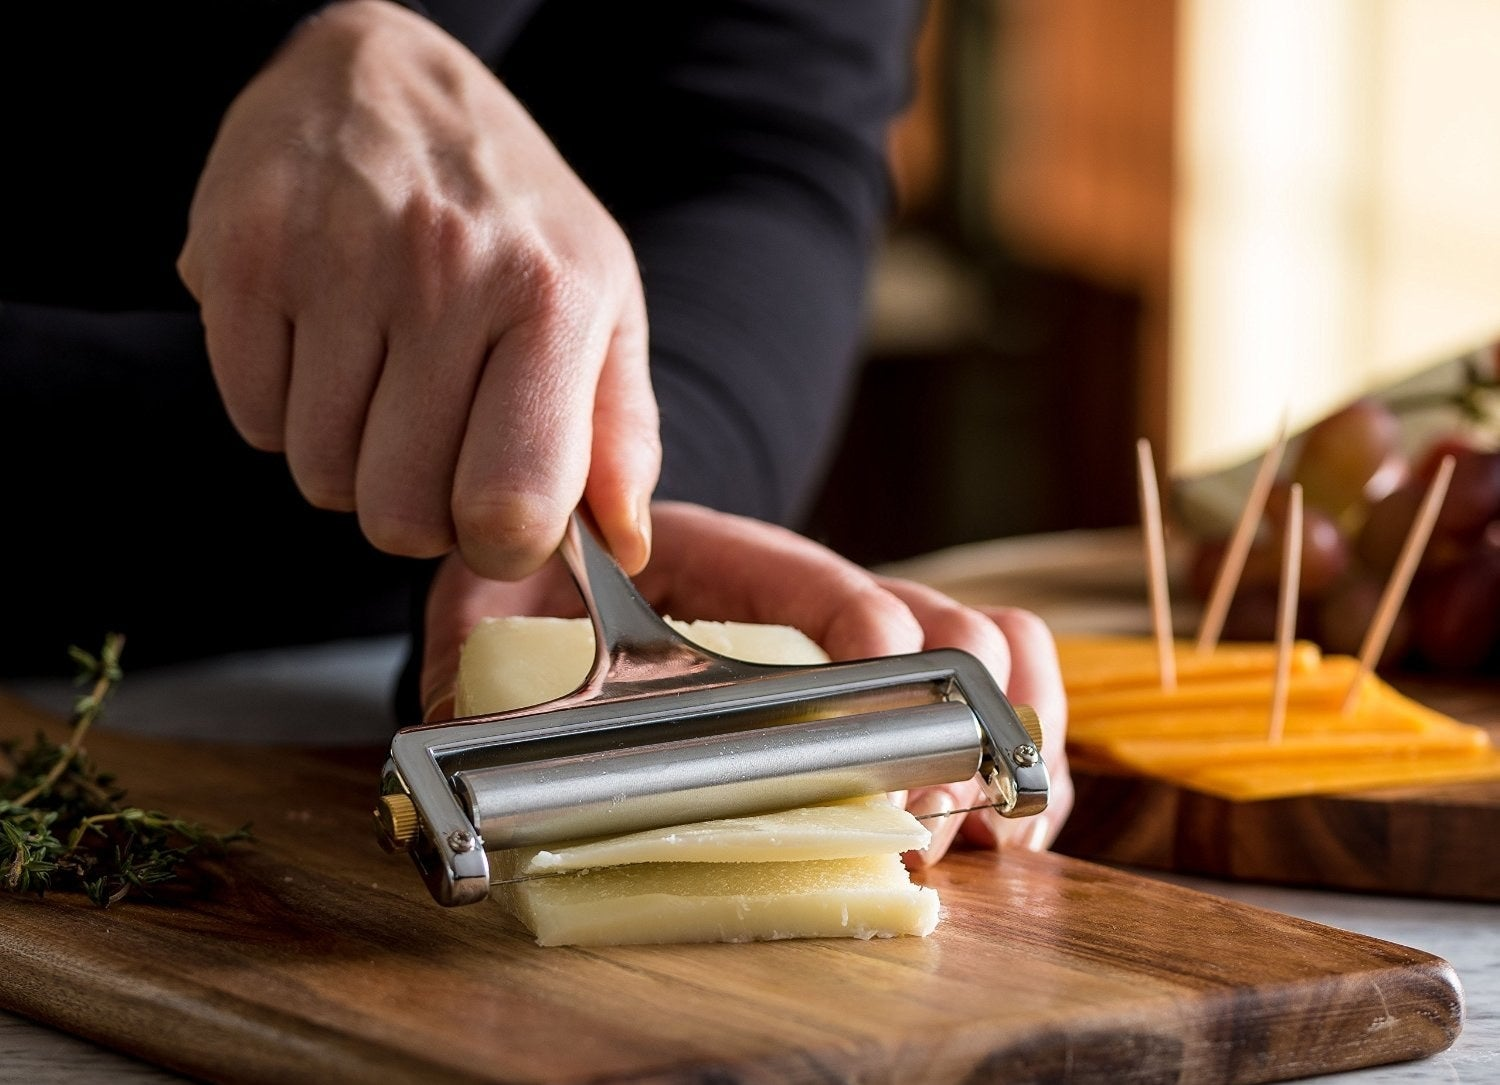 a pair of hands using the cheese slicer